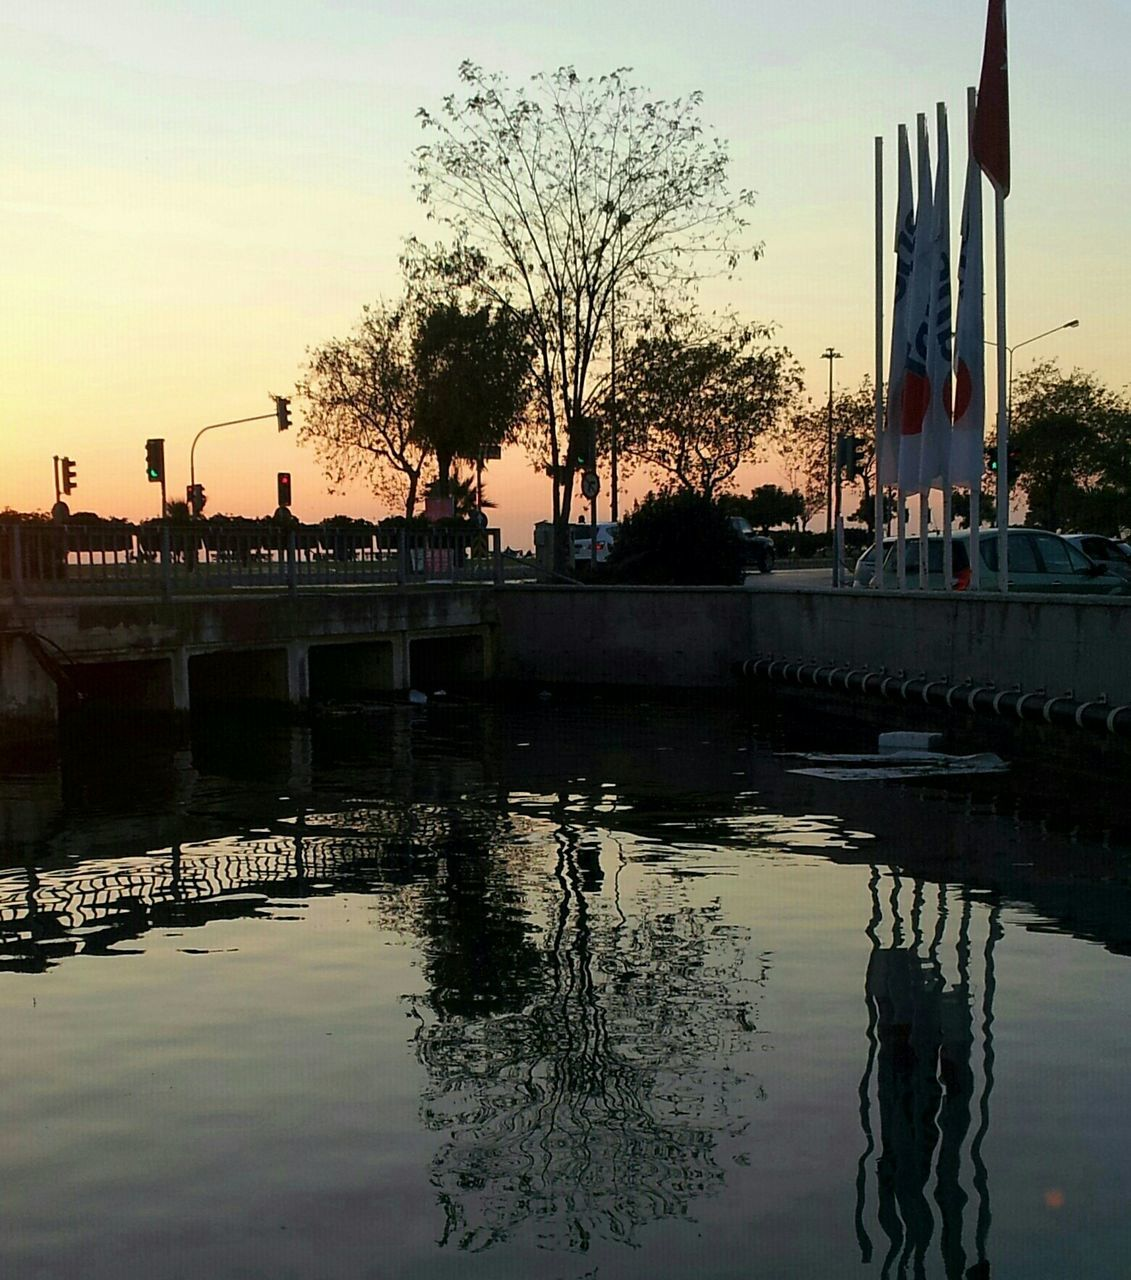 reflection, sunset, tree, water, architecture, building exterior, built structure, sky, outdoors, city, nature, no people, day